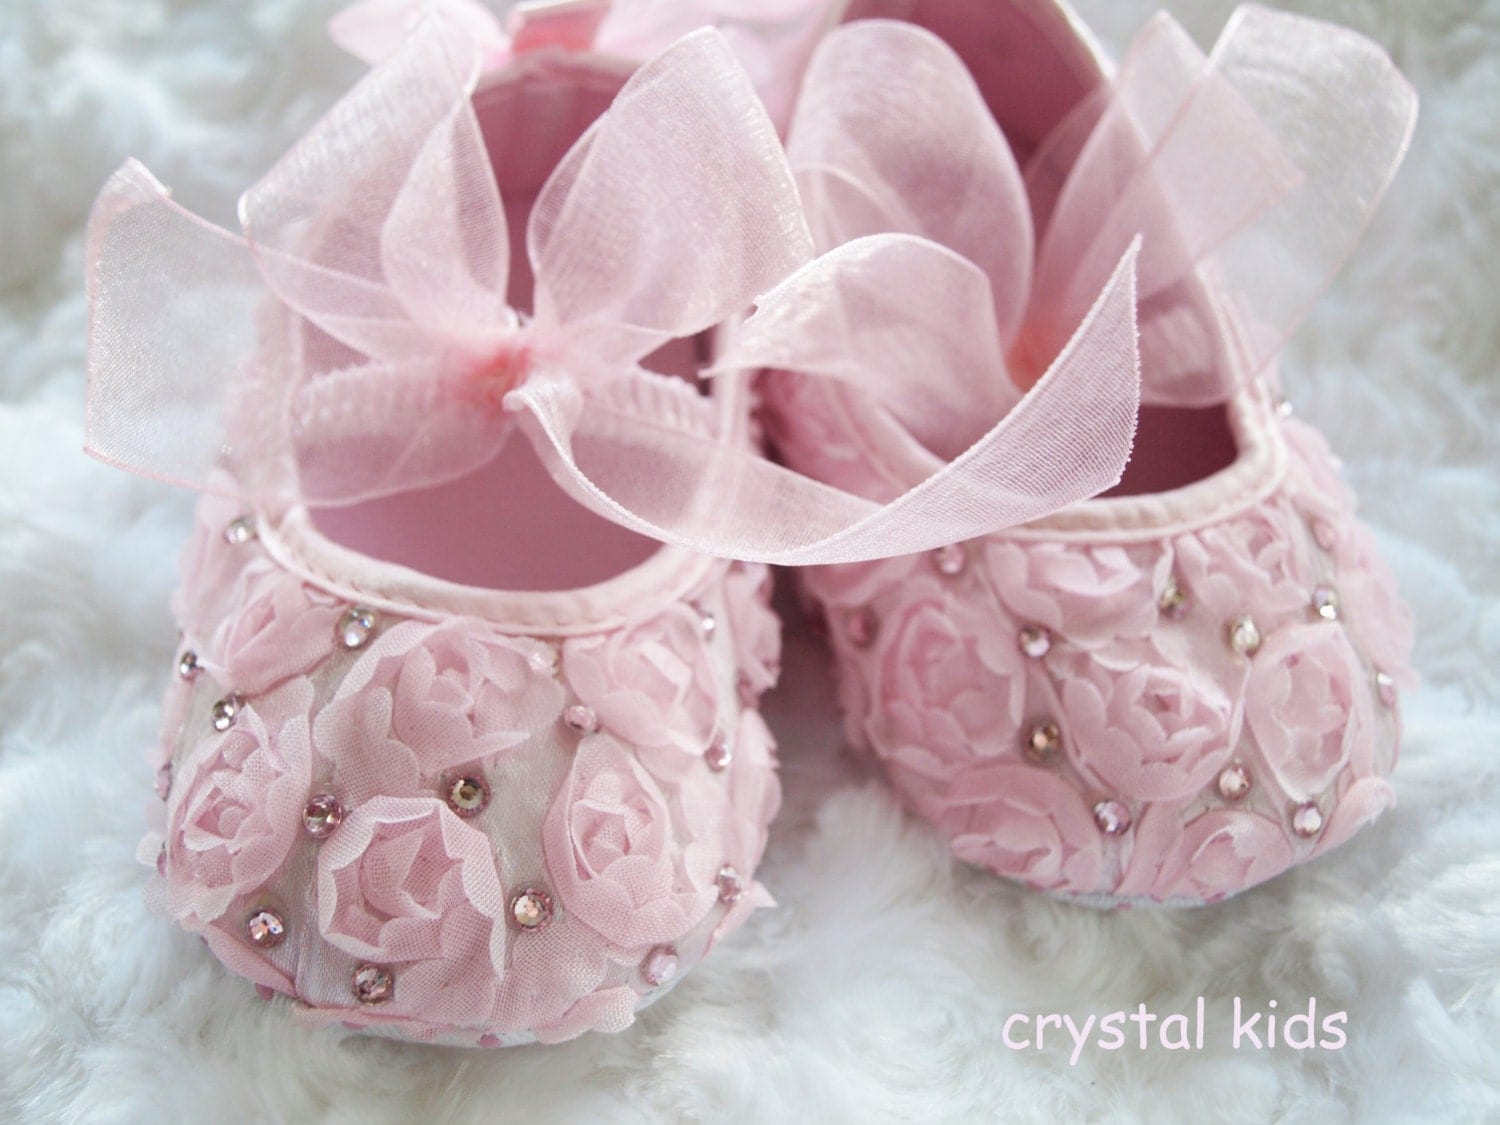 Unique Baby Girls Shoes Pink Rosebud Satin Pram Shoes Christening Baptism Wedding Pram Shoes 36 69 912 Months